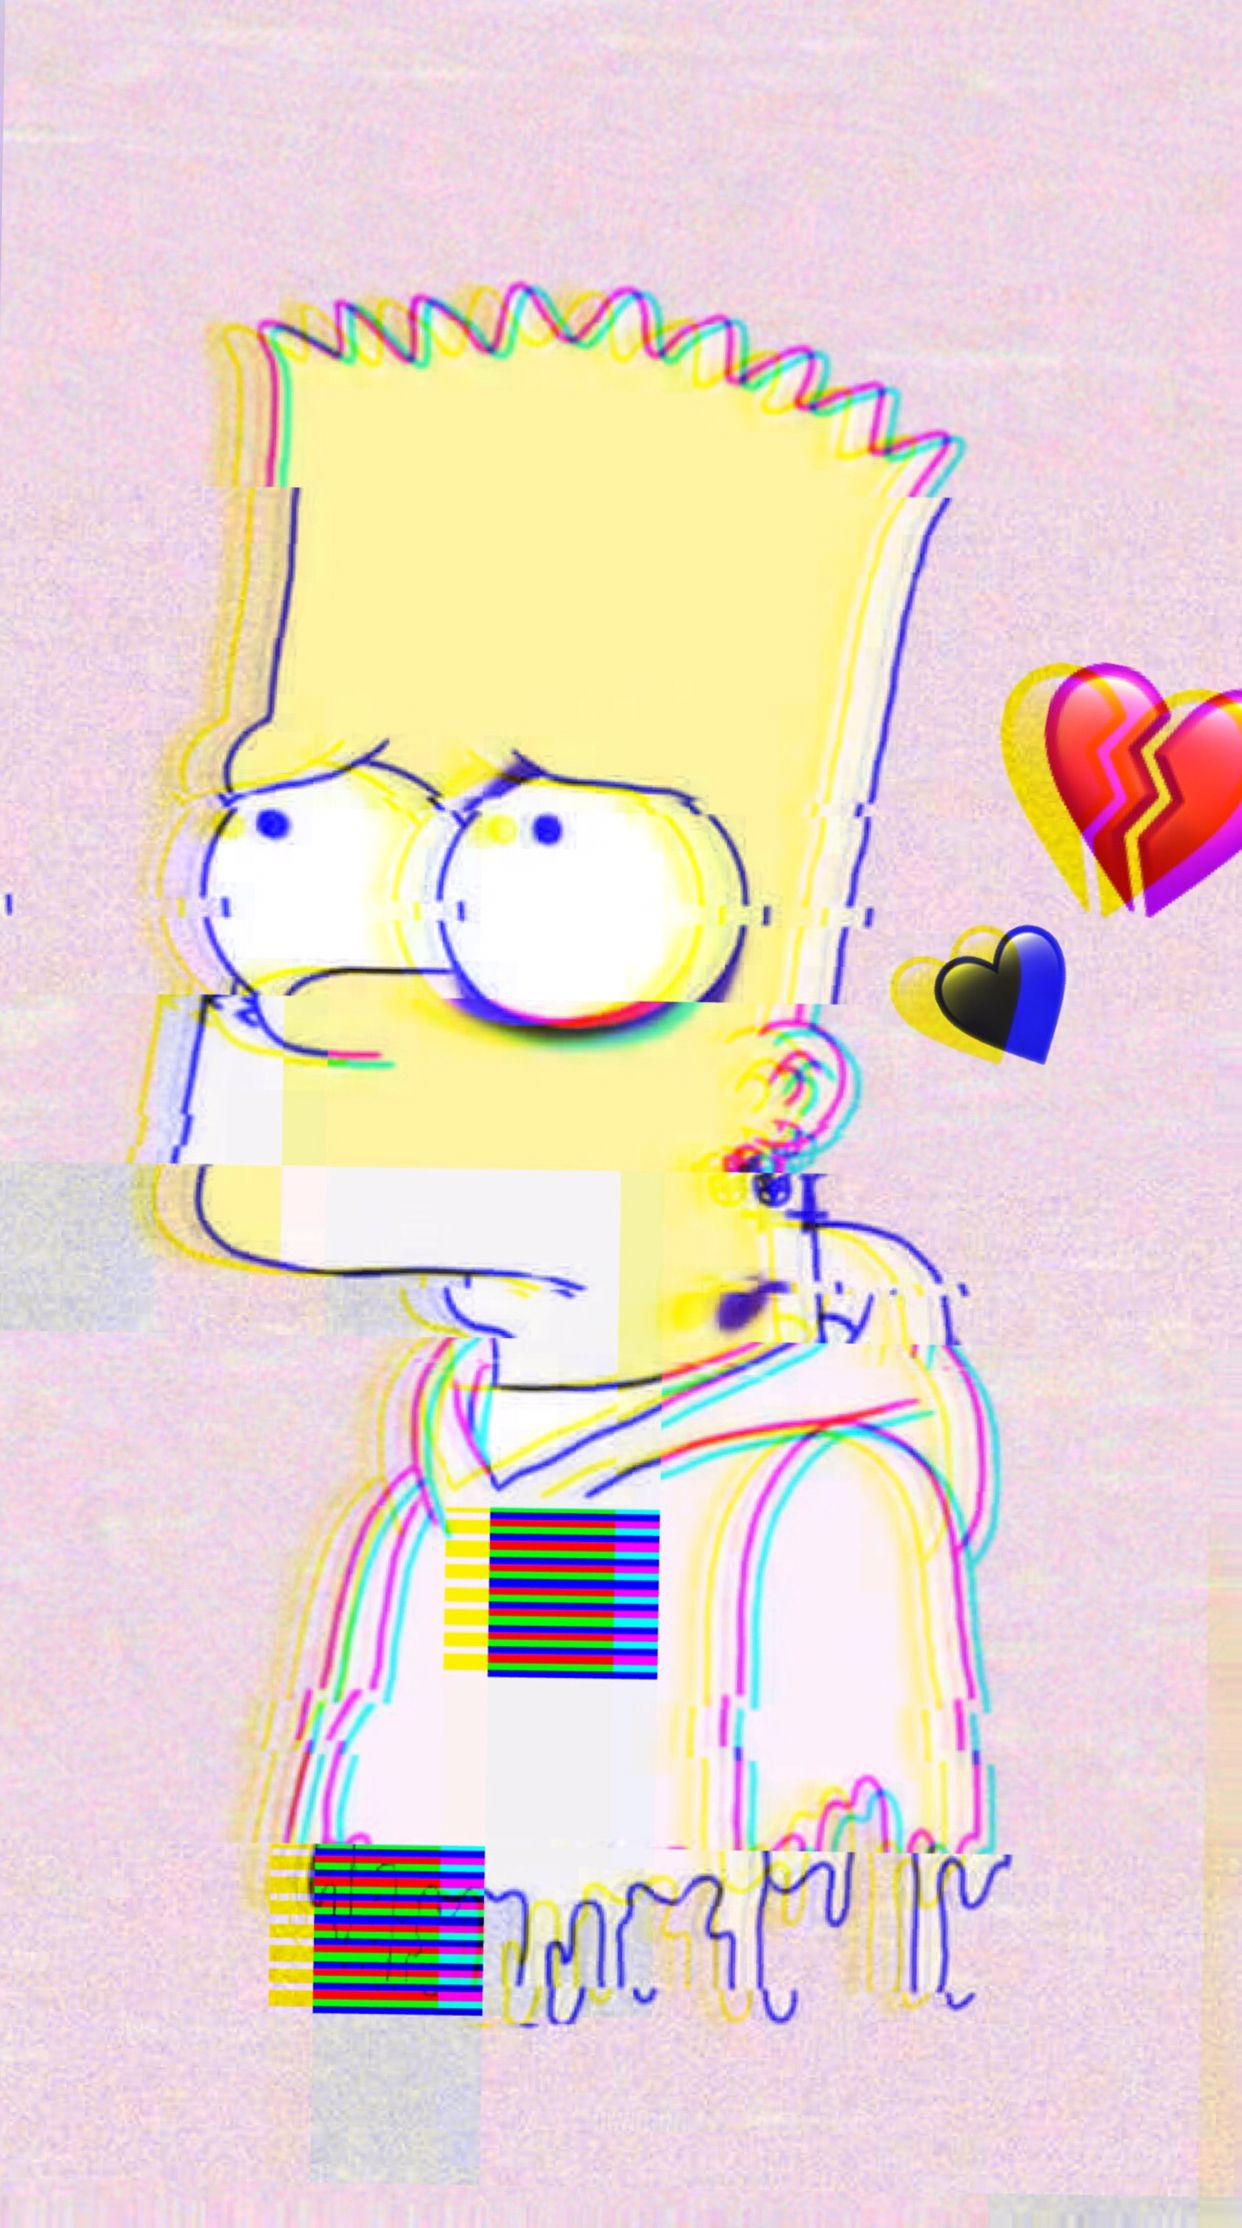 The Simpsons Aesthetic Wallpaper